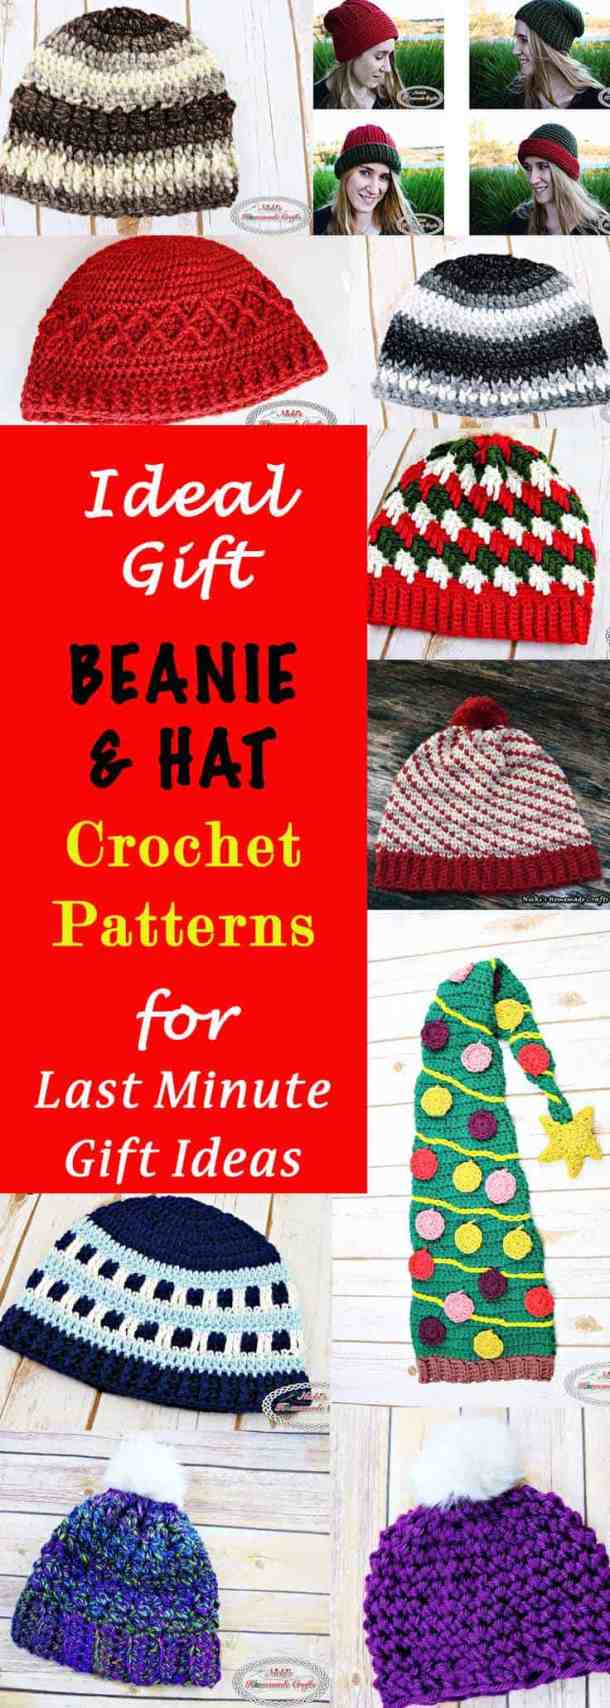 Ideal Gift Beanie and Hat Crochet Patterns for Last Minute Gift Ideas. This Collection is very detailed in explaining all kinds of aspects in making and designing a beanie or hat and provides many ideas and tips and tricks. This Collection was created by Nicki's Homemade Crafts #crochet #beanie #hat #last #minute #gift #idea #ideal #perfect #collection #free #pattern